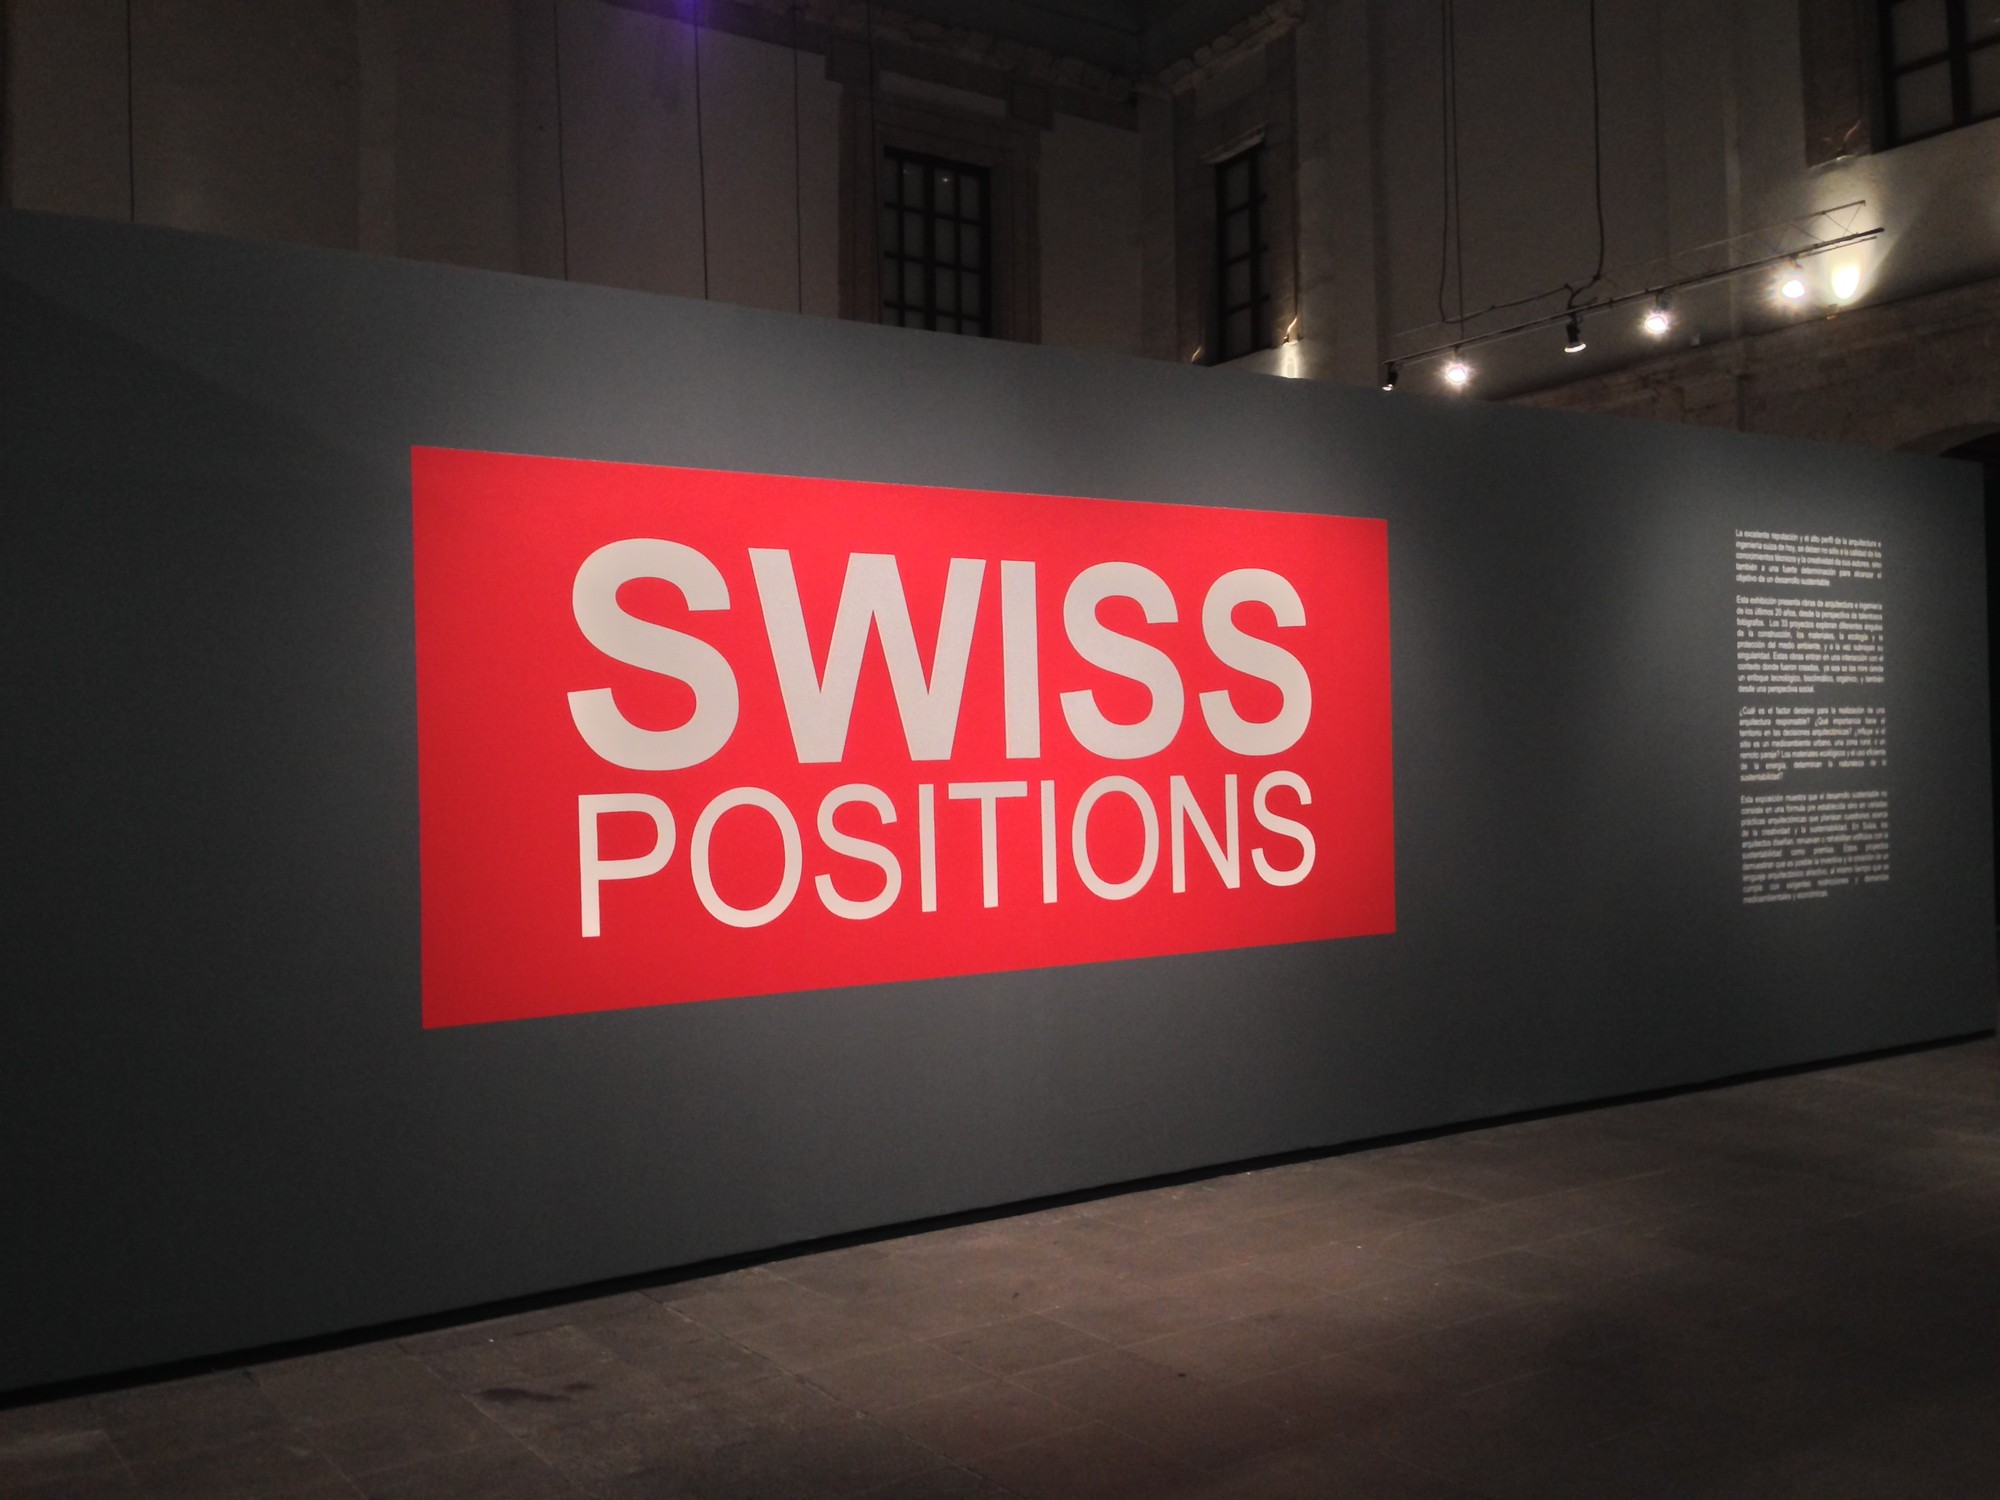 Swiss Positions: 33 proyectos para un enfoque sustentable / Museo Franz Mayer, Cortesía Museo Franz Mayer